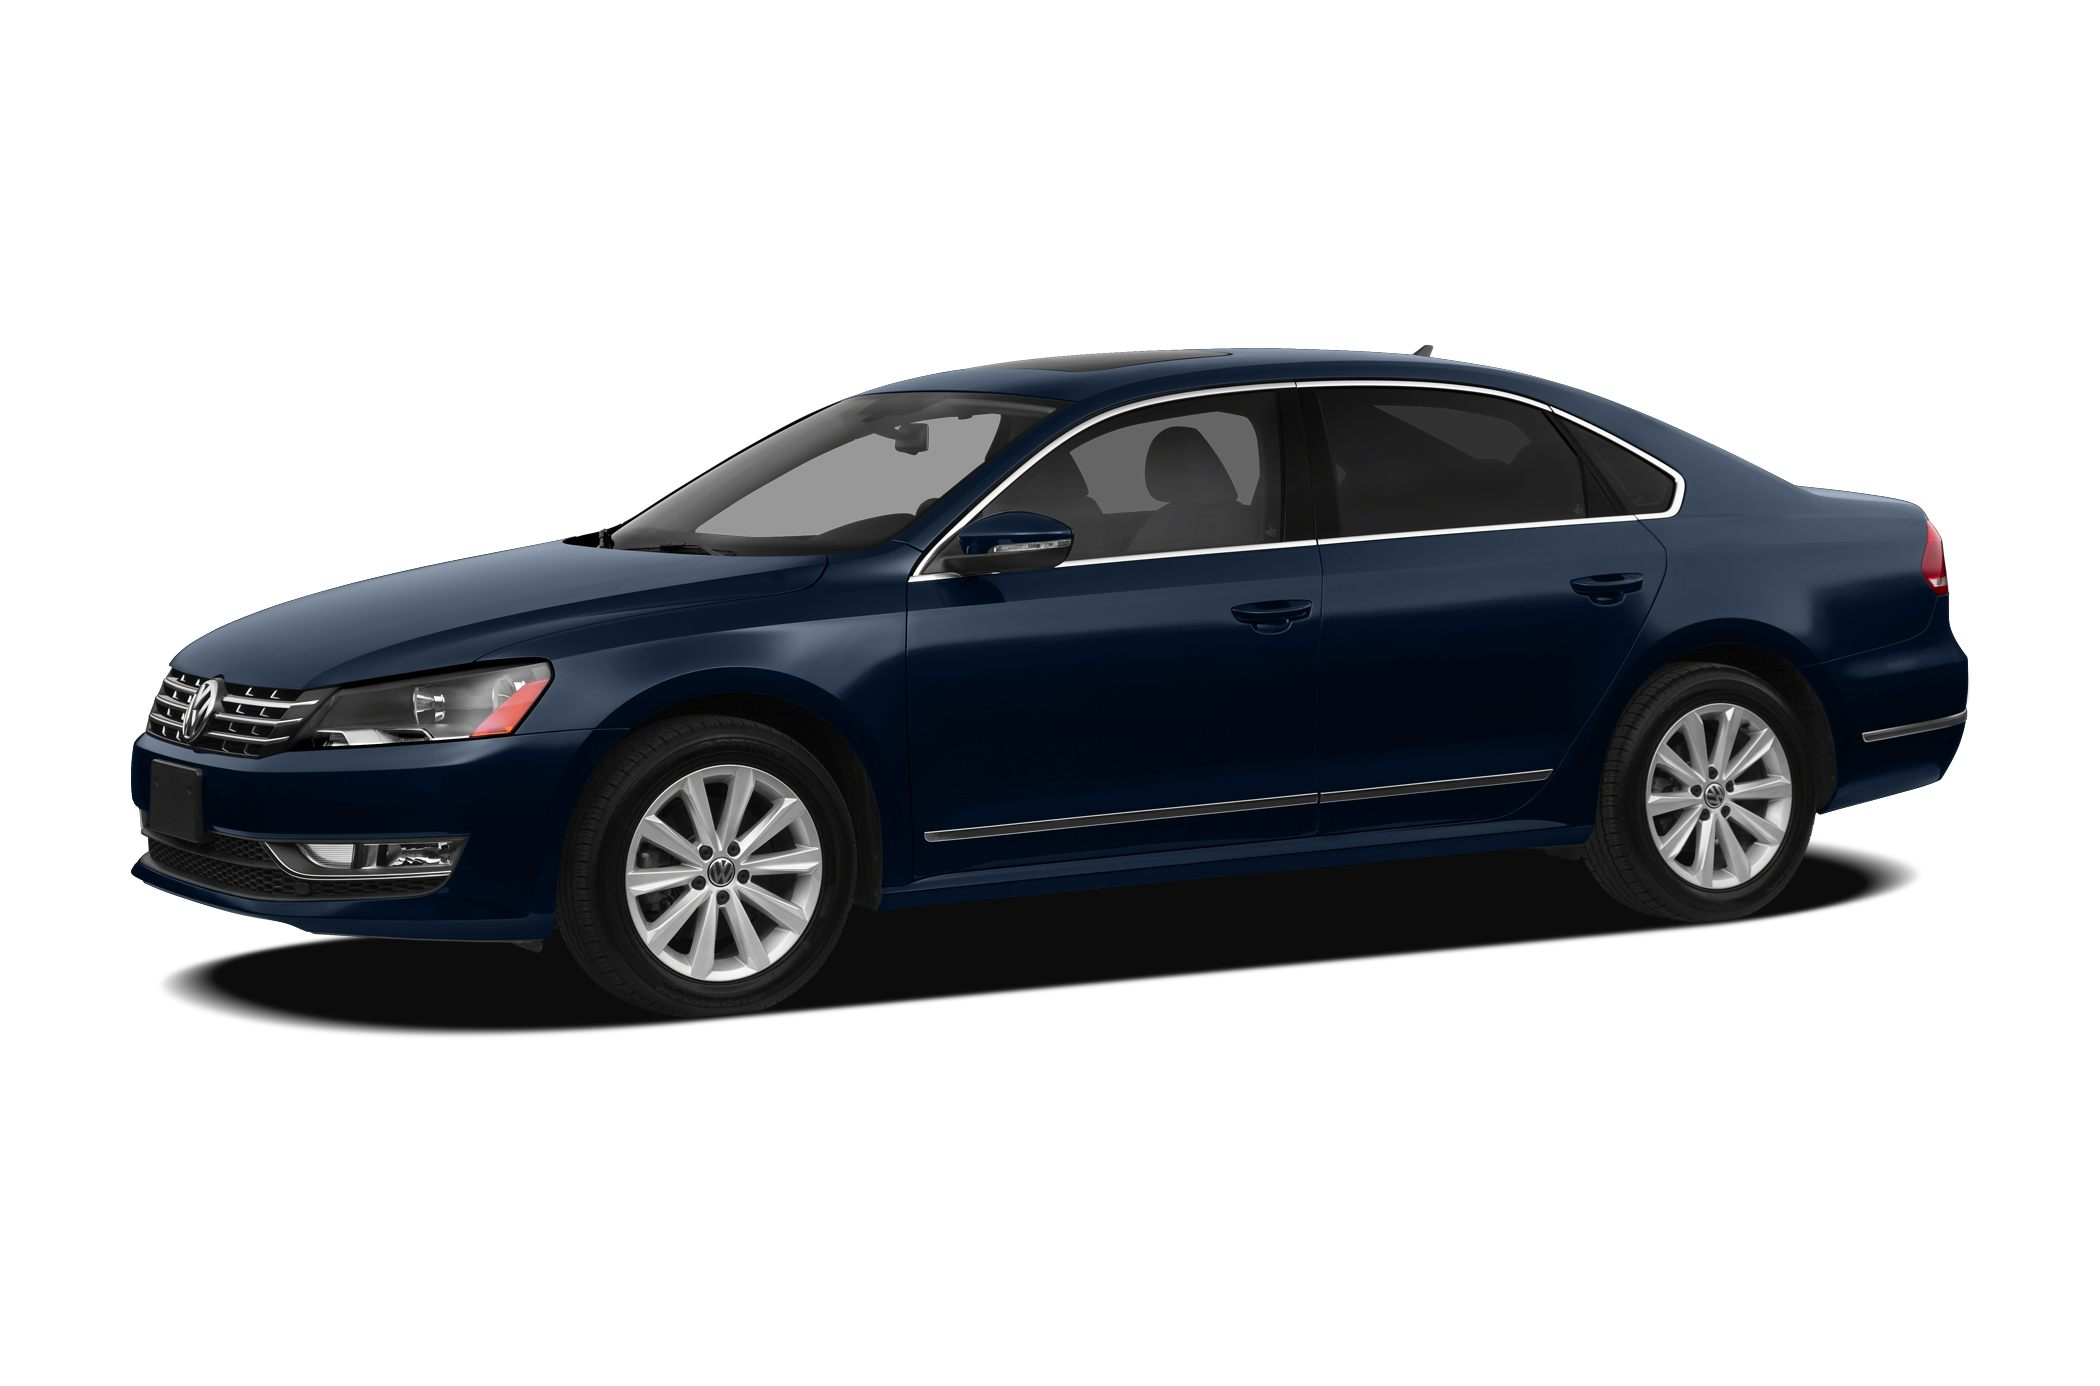 2012 Volkswagen Passat 25 SE LOADEDLEATHERHEATED SEATS SE Package clean NON-SMOKER very well ke